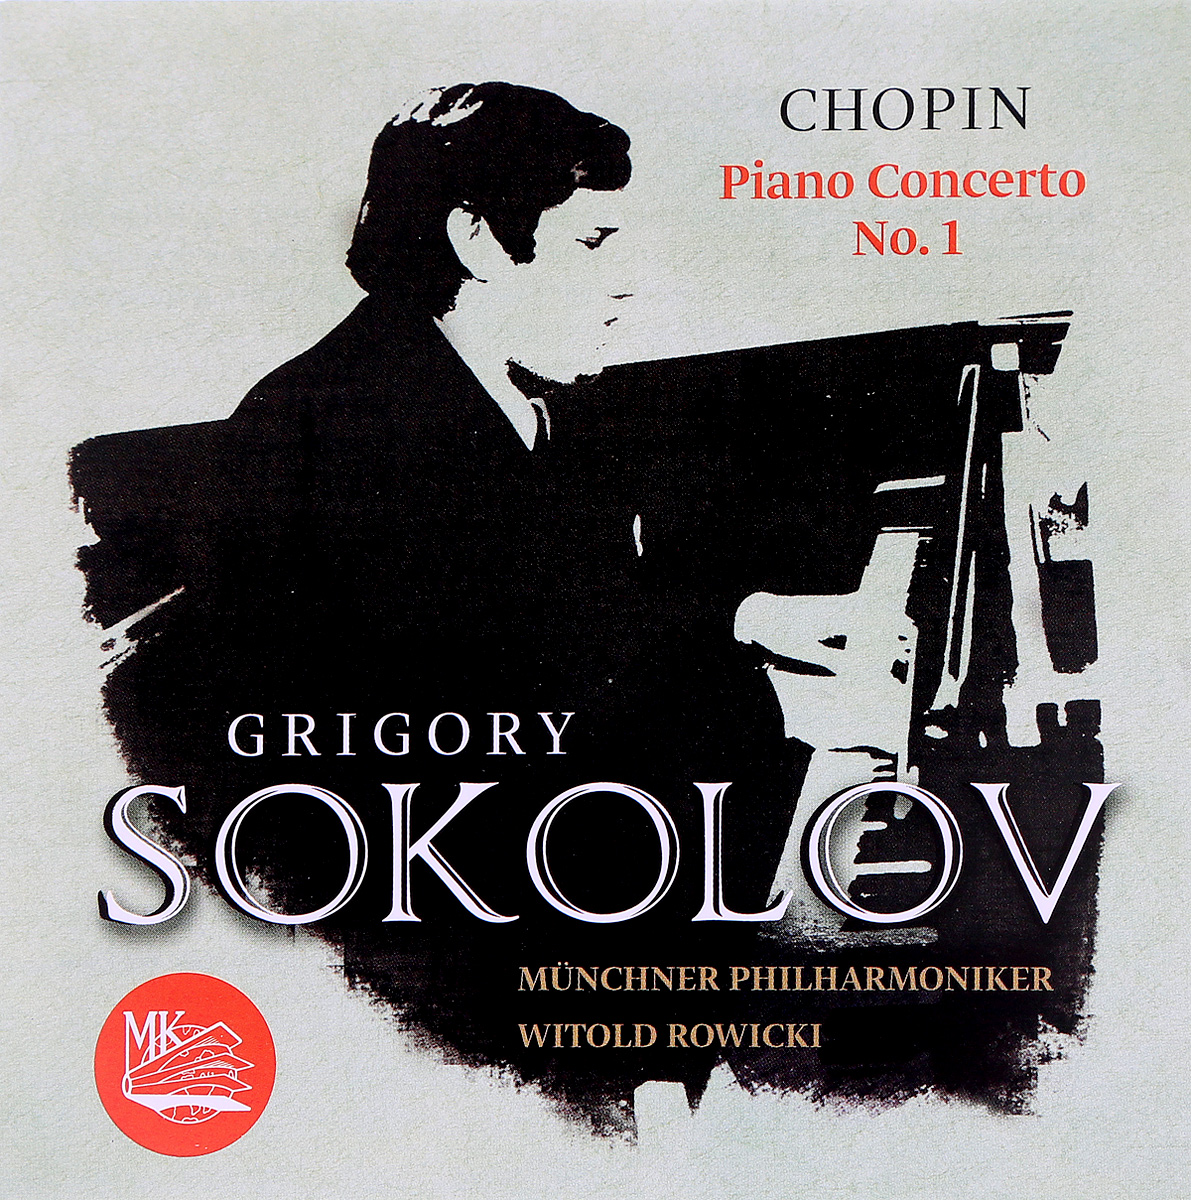 Григорий Соколов Grigory Sokolov. Chopin. Piano Concerto No. 1